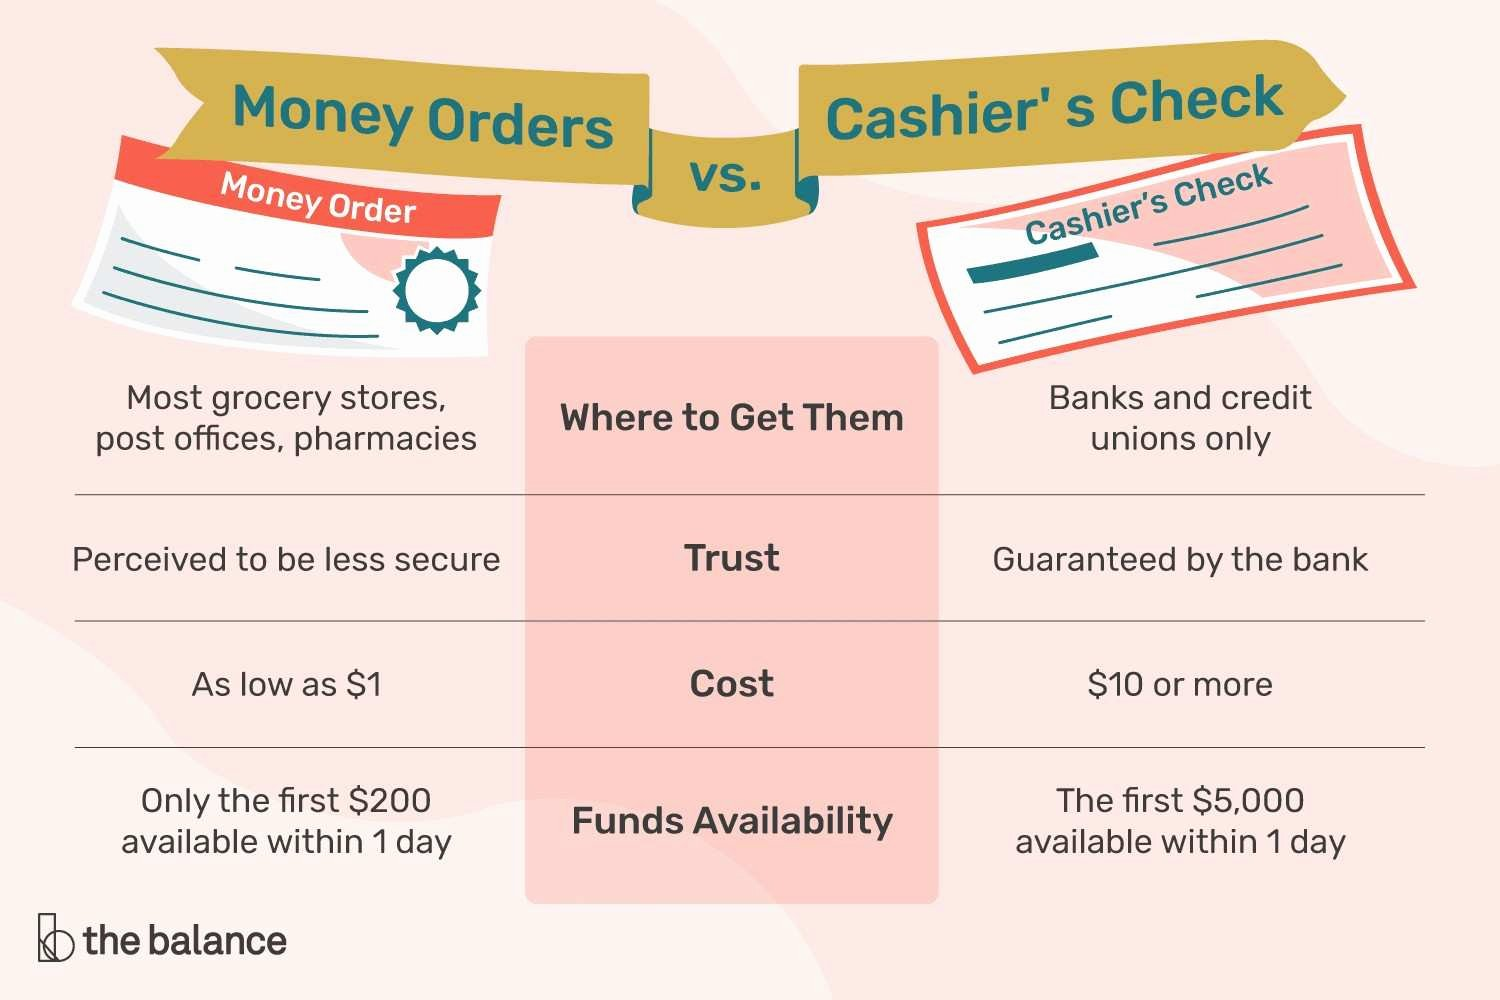 Fake Cashiers Check Template Elegant Fake Cashiers Check Template Unique Money order Vs Cashier